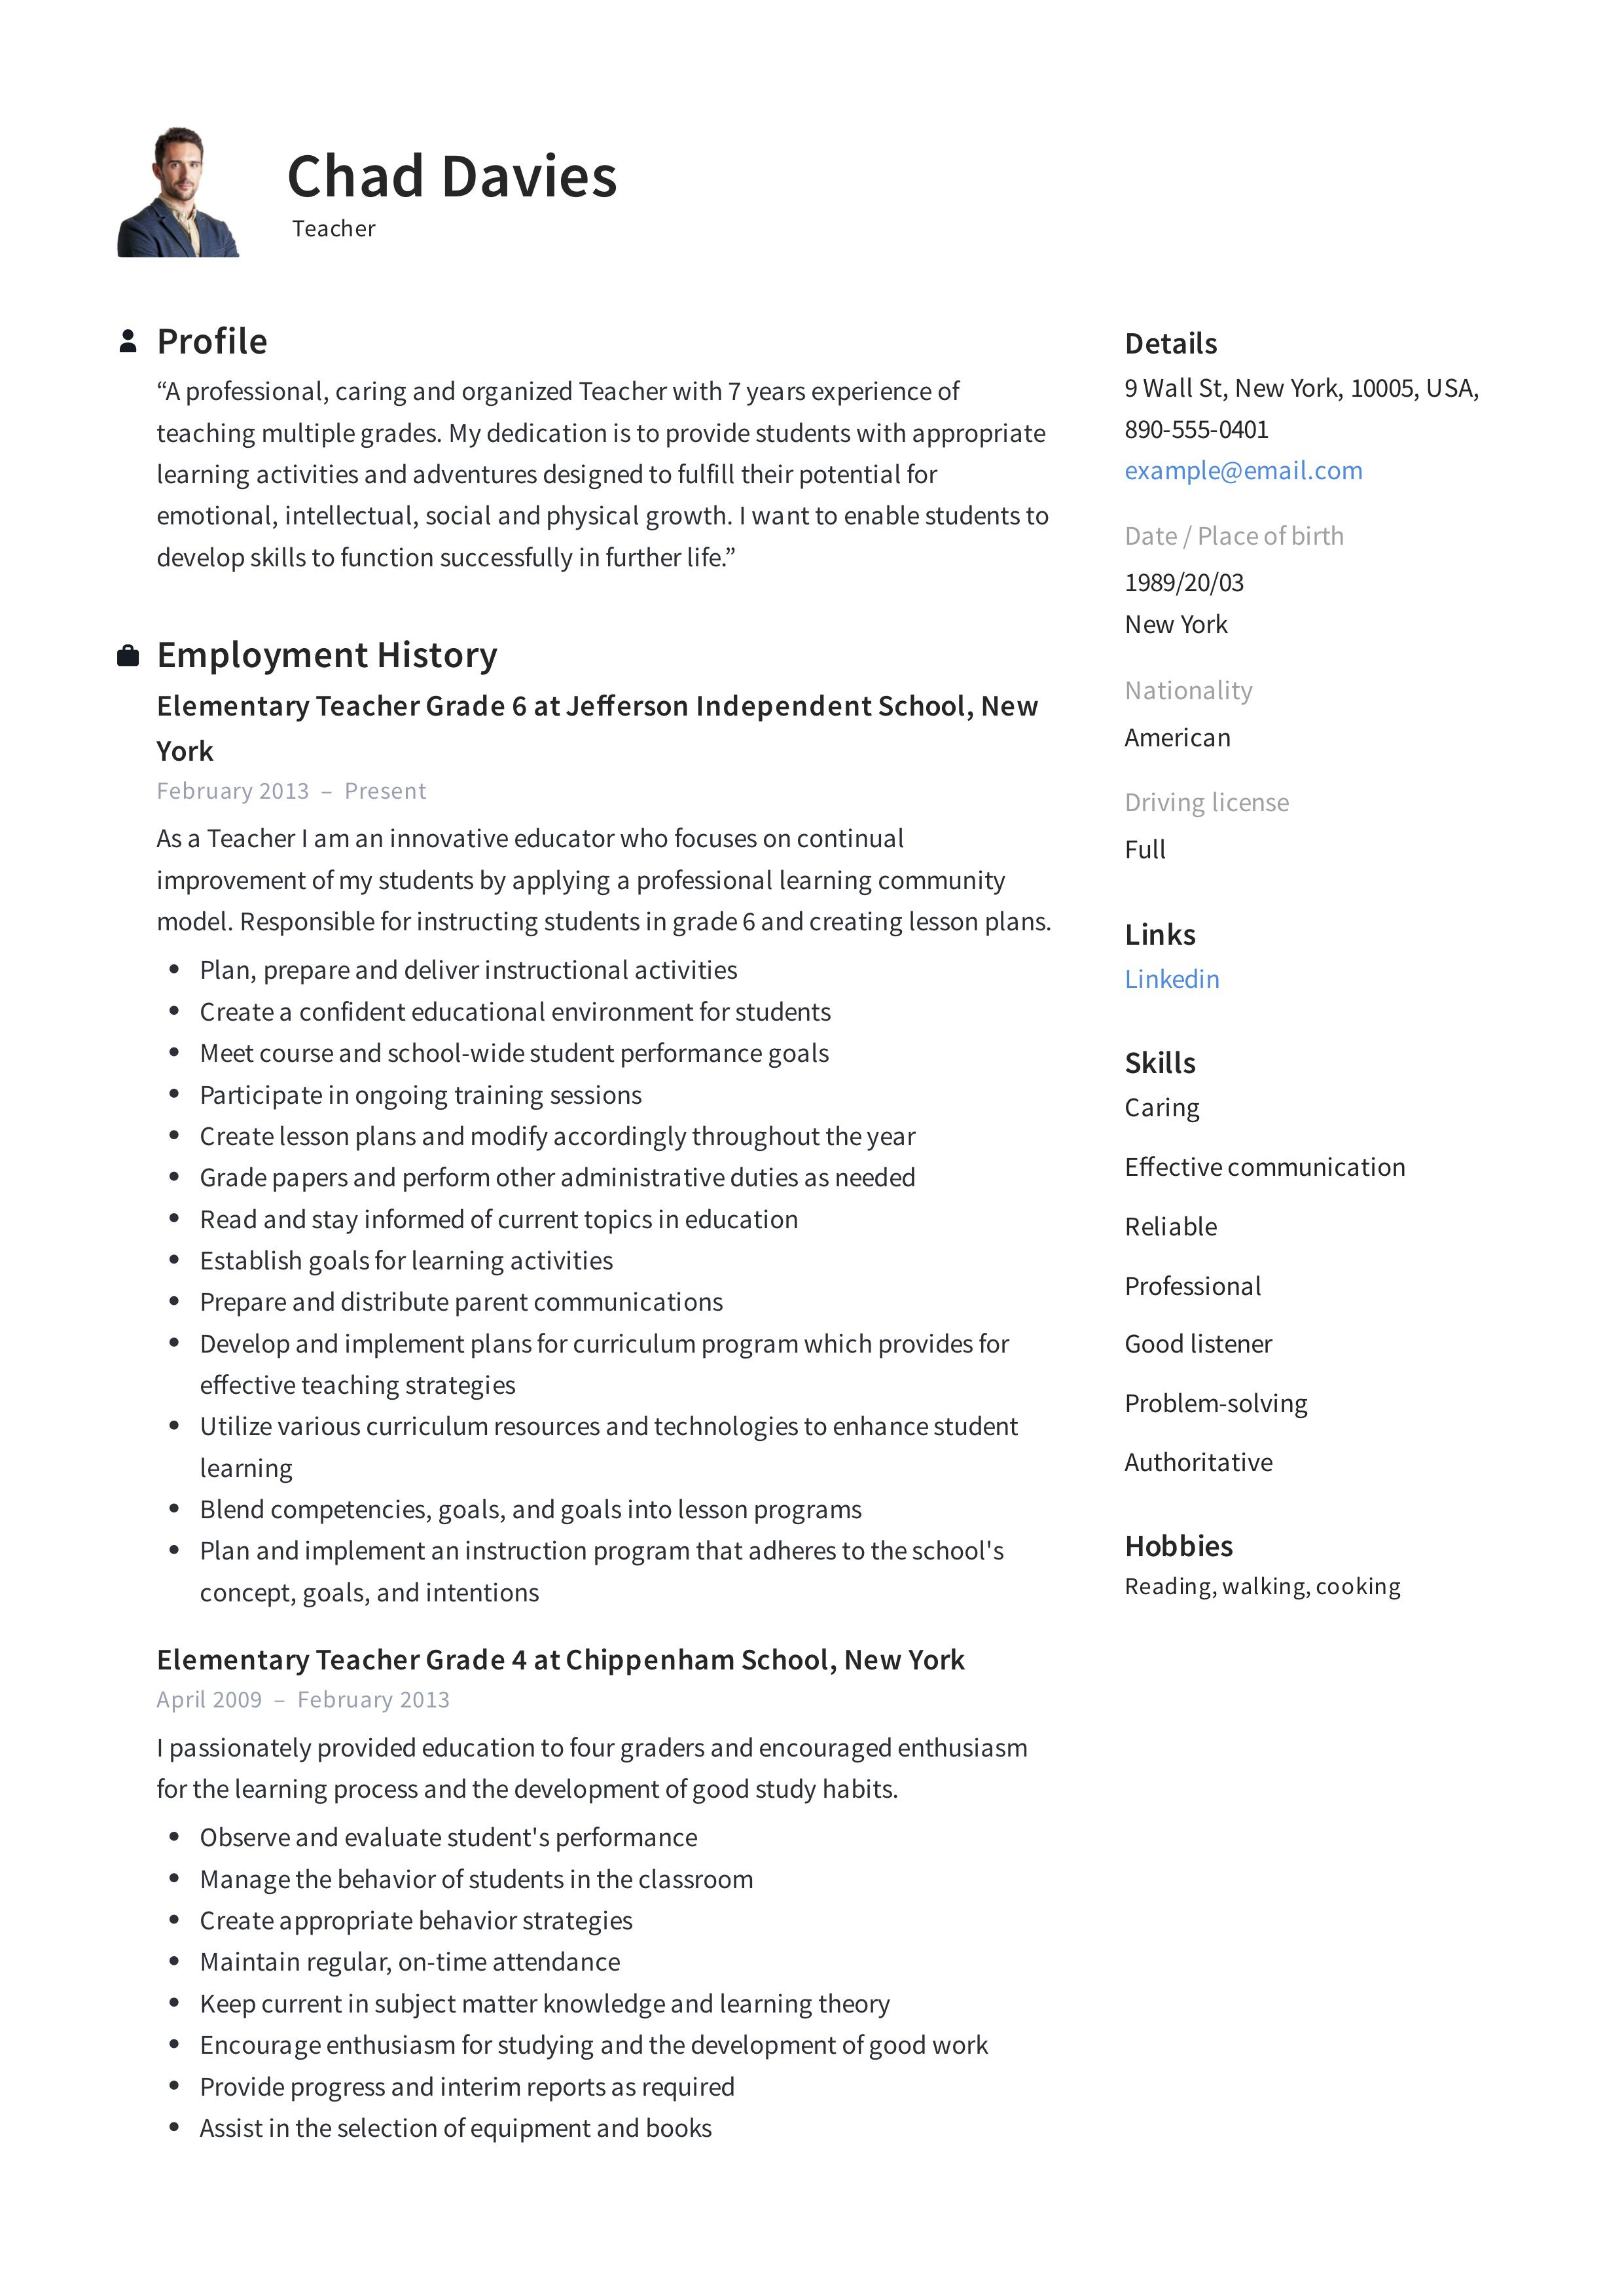 001 Magnificent Resume Template For Teaching High Resolution  Cv Job Application Assistant In PakistanFull